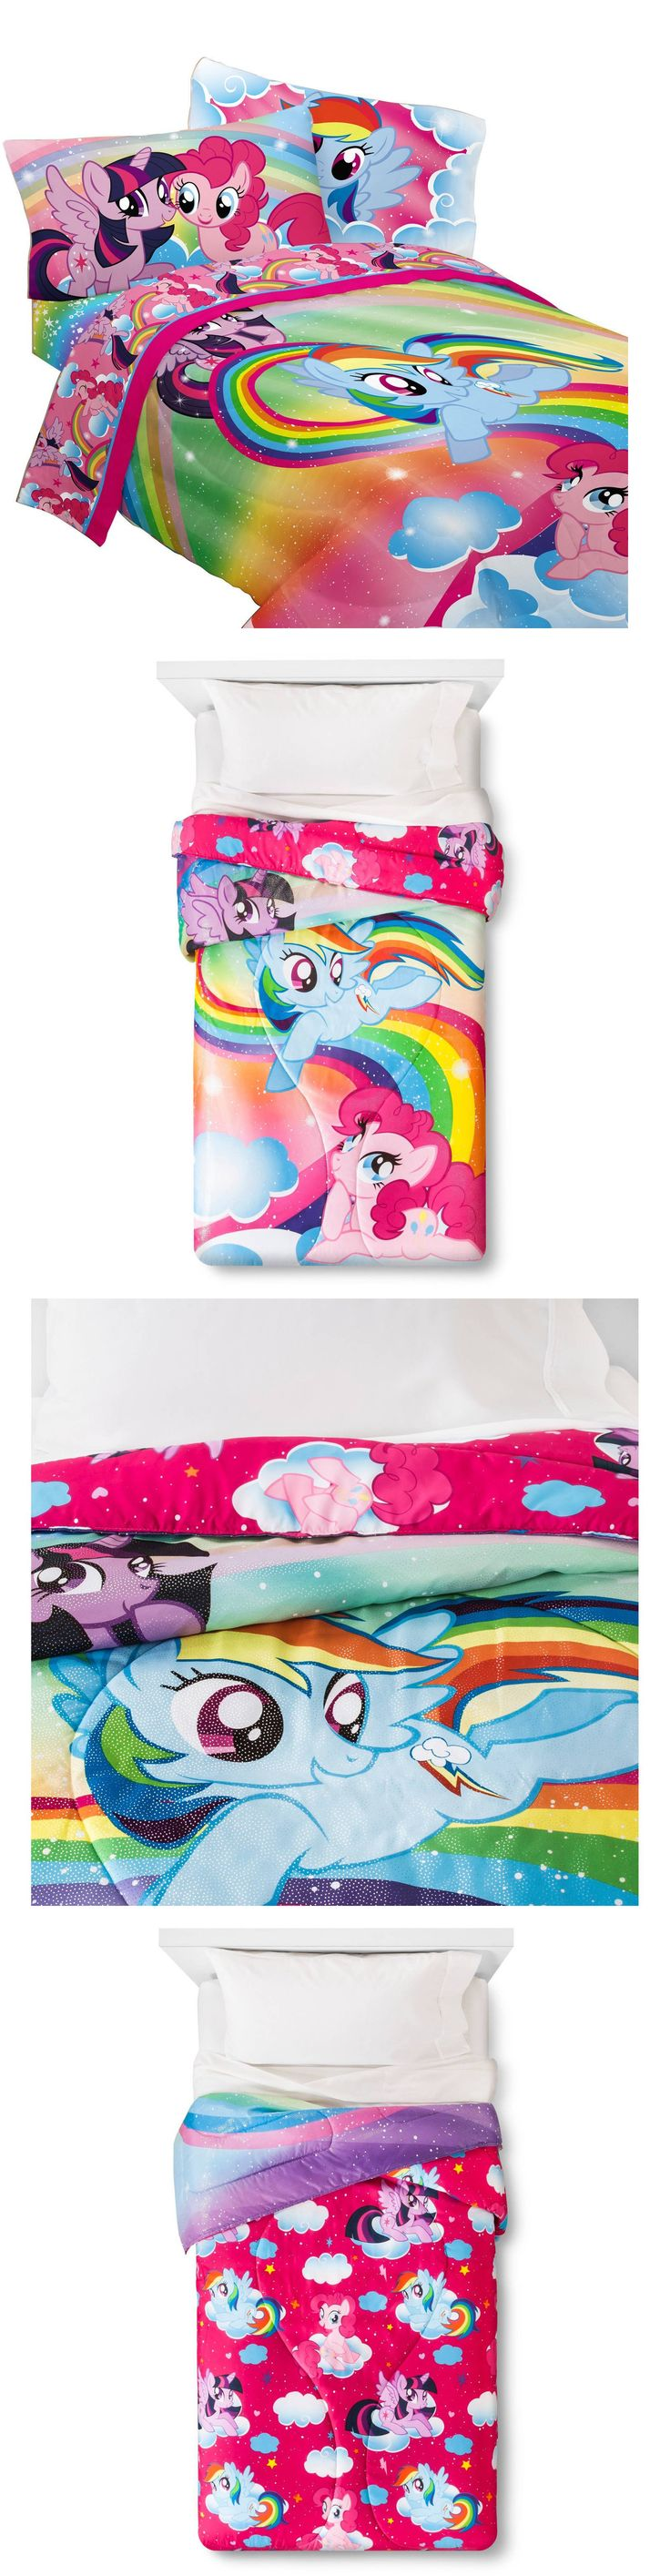 Kids Bedding: New Hasbro My Little Pony Living The Dream Microfiber Comforter - Twin -> BUY IT NOW ONLY: $31.99 on eBay!